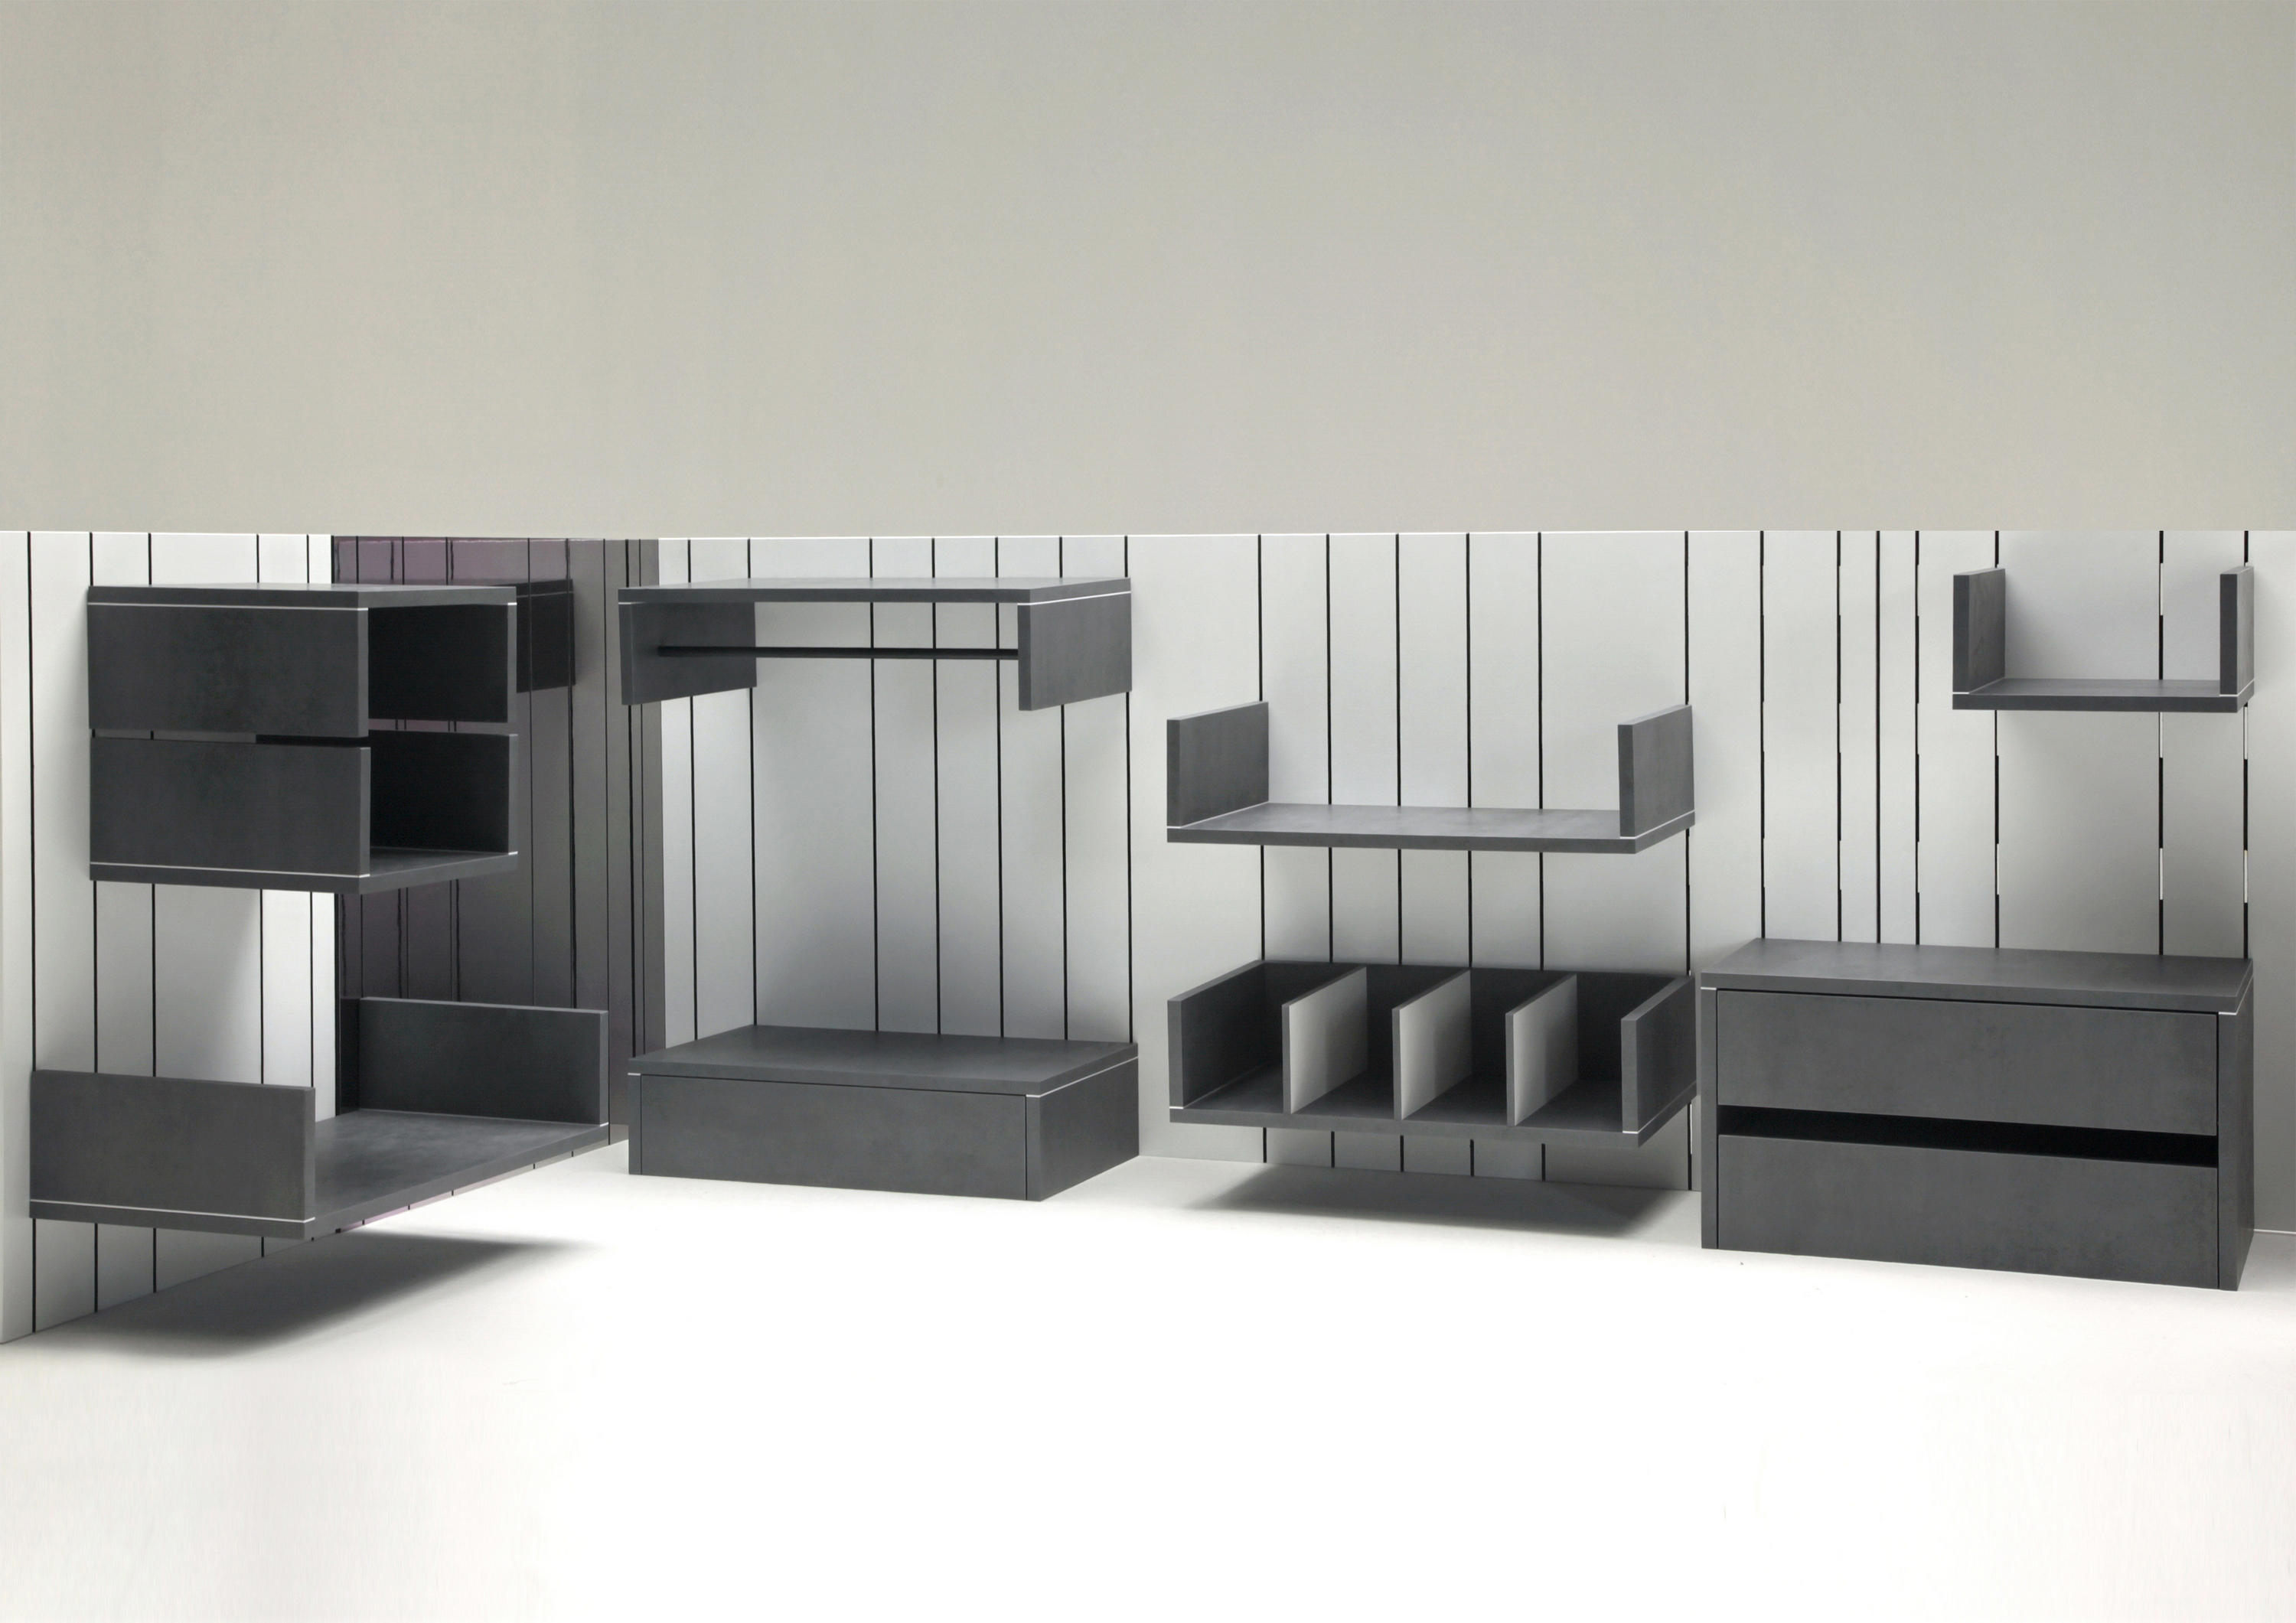 Modular storage furniture systems - Lind Modular Storage System By Dizz Concept Modular Structural Systems